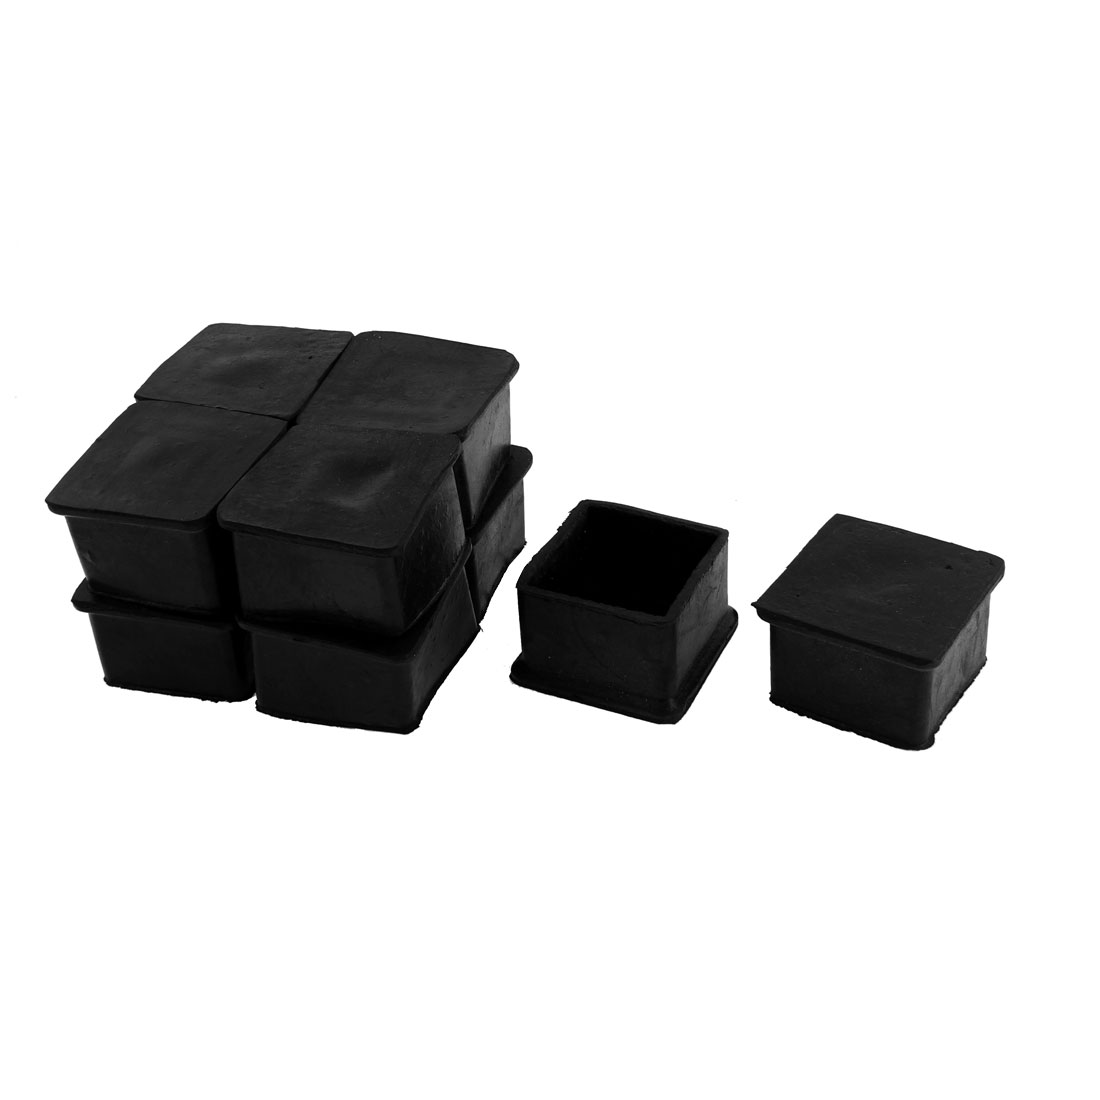 Furniture Square Foot Covers Floor Protector Black 50 x 50mm 10pcs